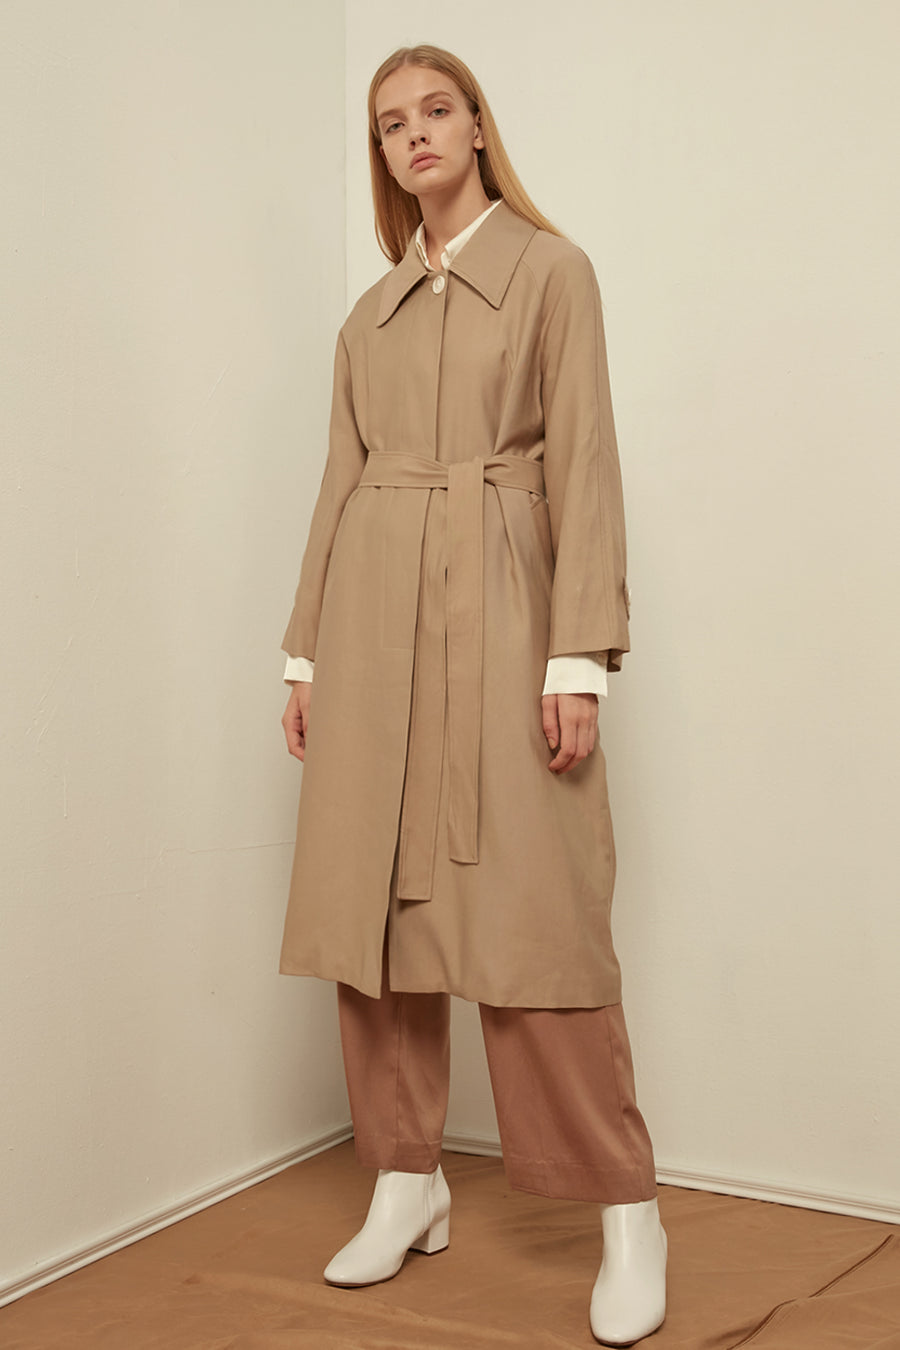 Longline belted cotton-blend coat - Zelle Studio